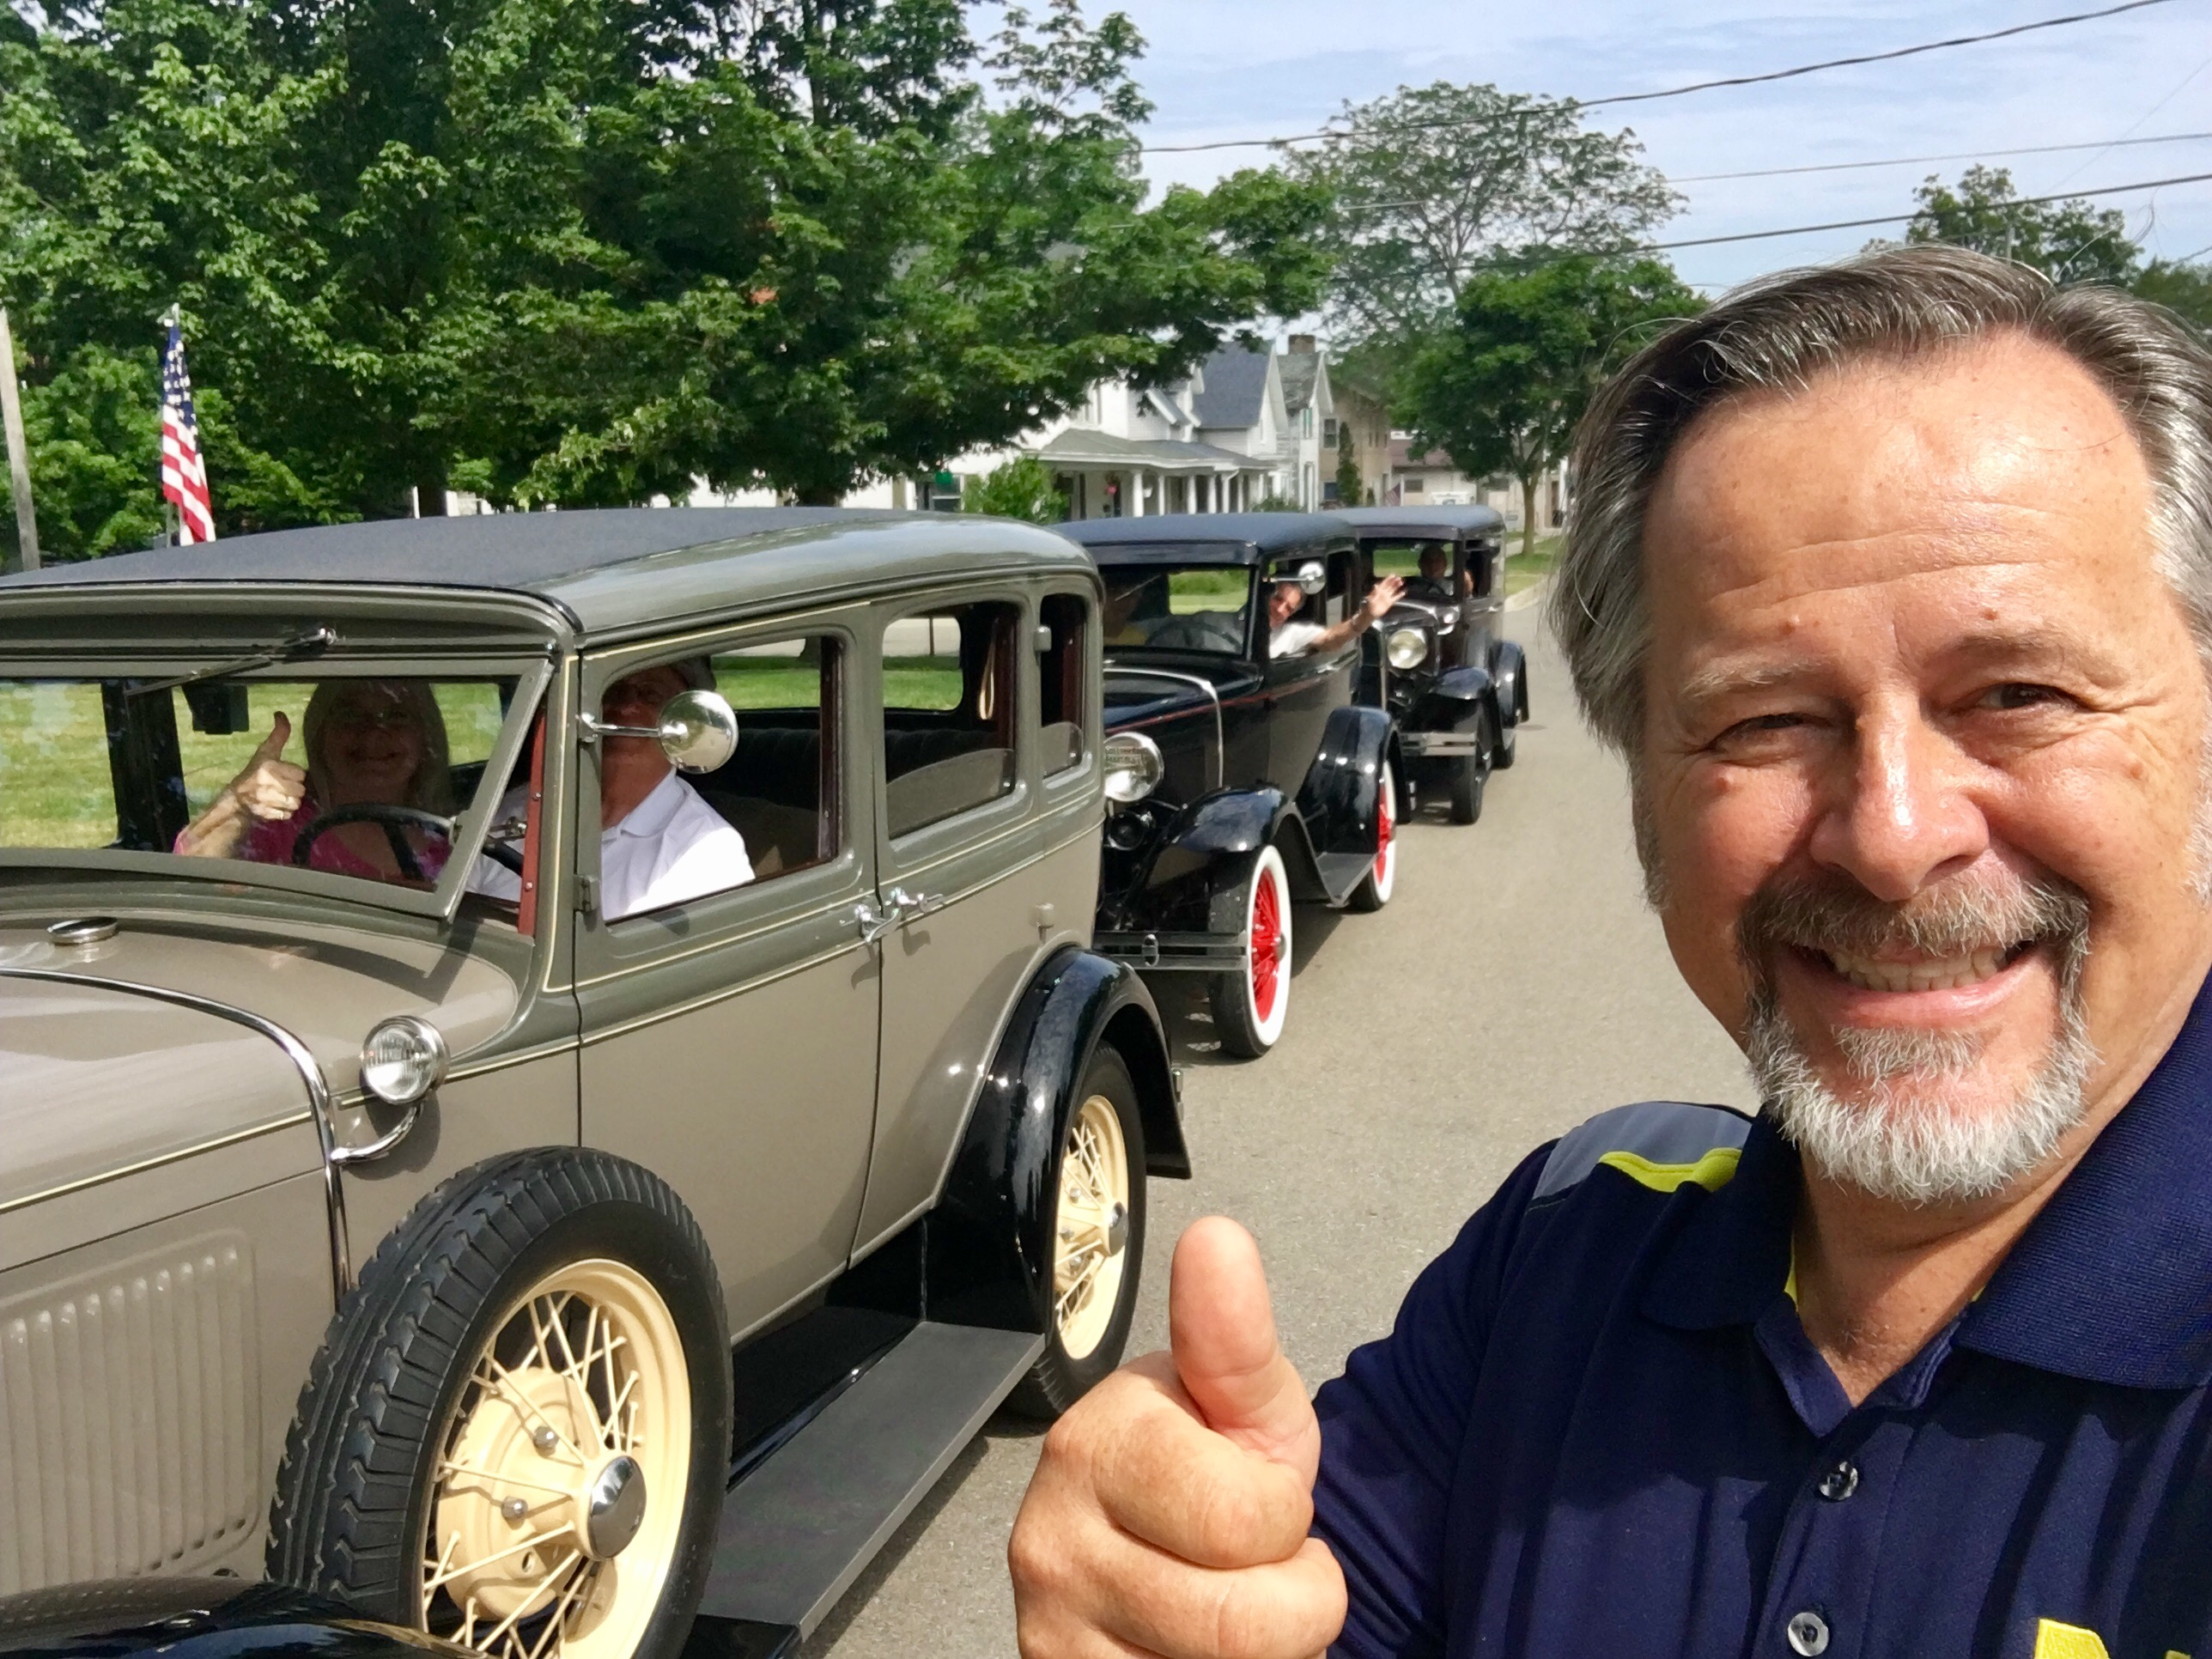 Model T automobiles behind man in blue shirt